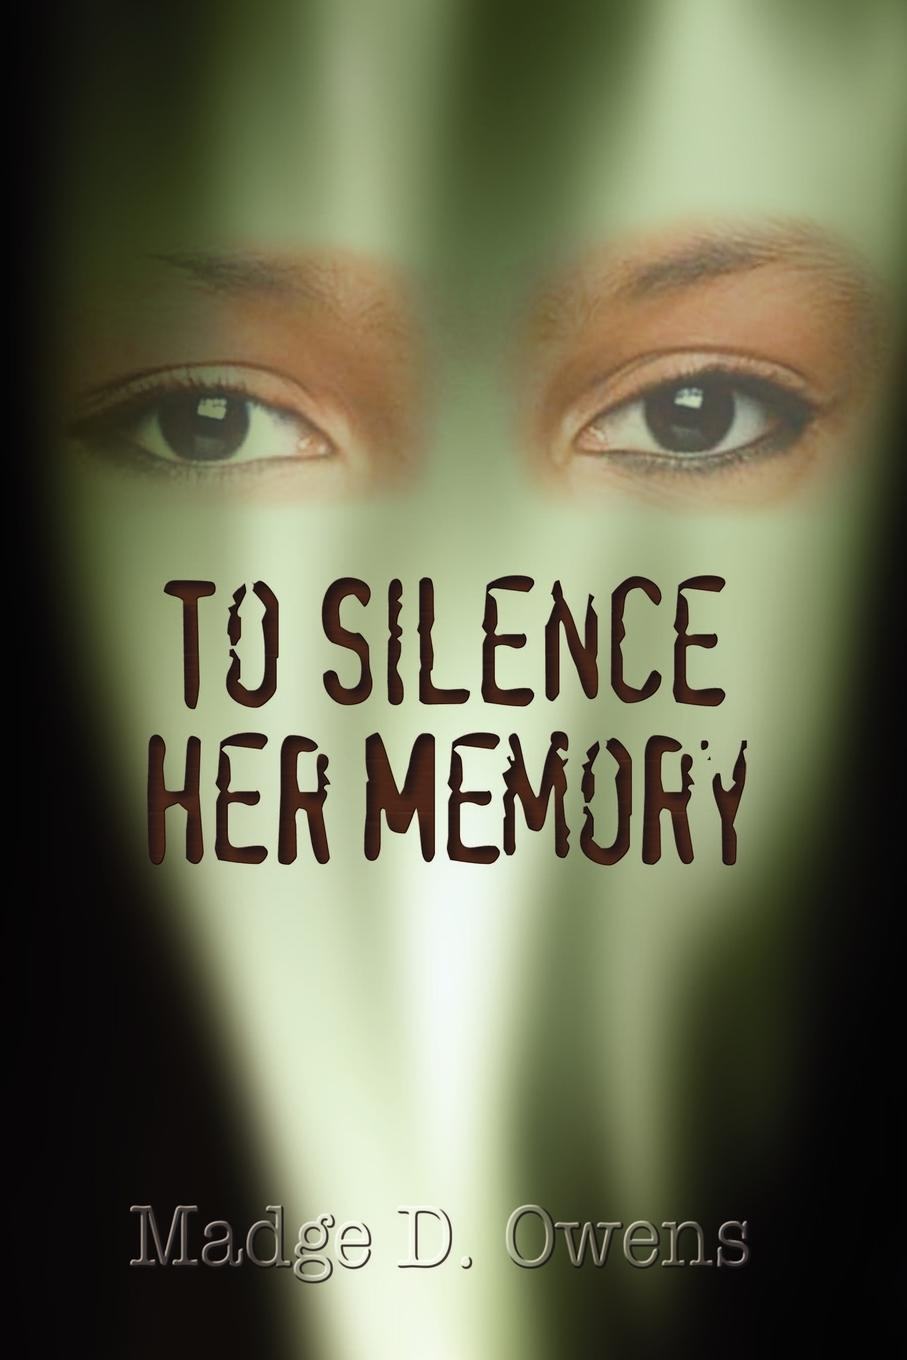 Madge D. Owens To Silence Her Memory bethenia owens adair dr owens adair some of her life experiences